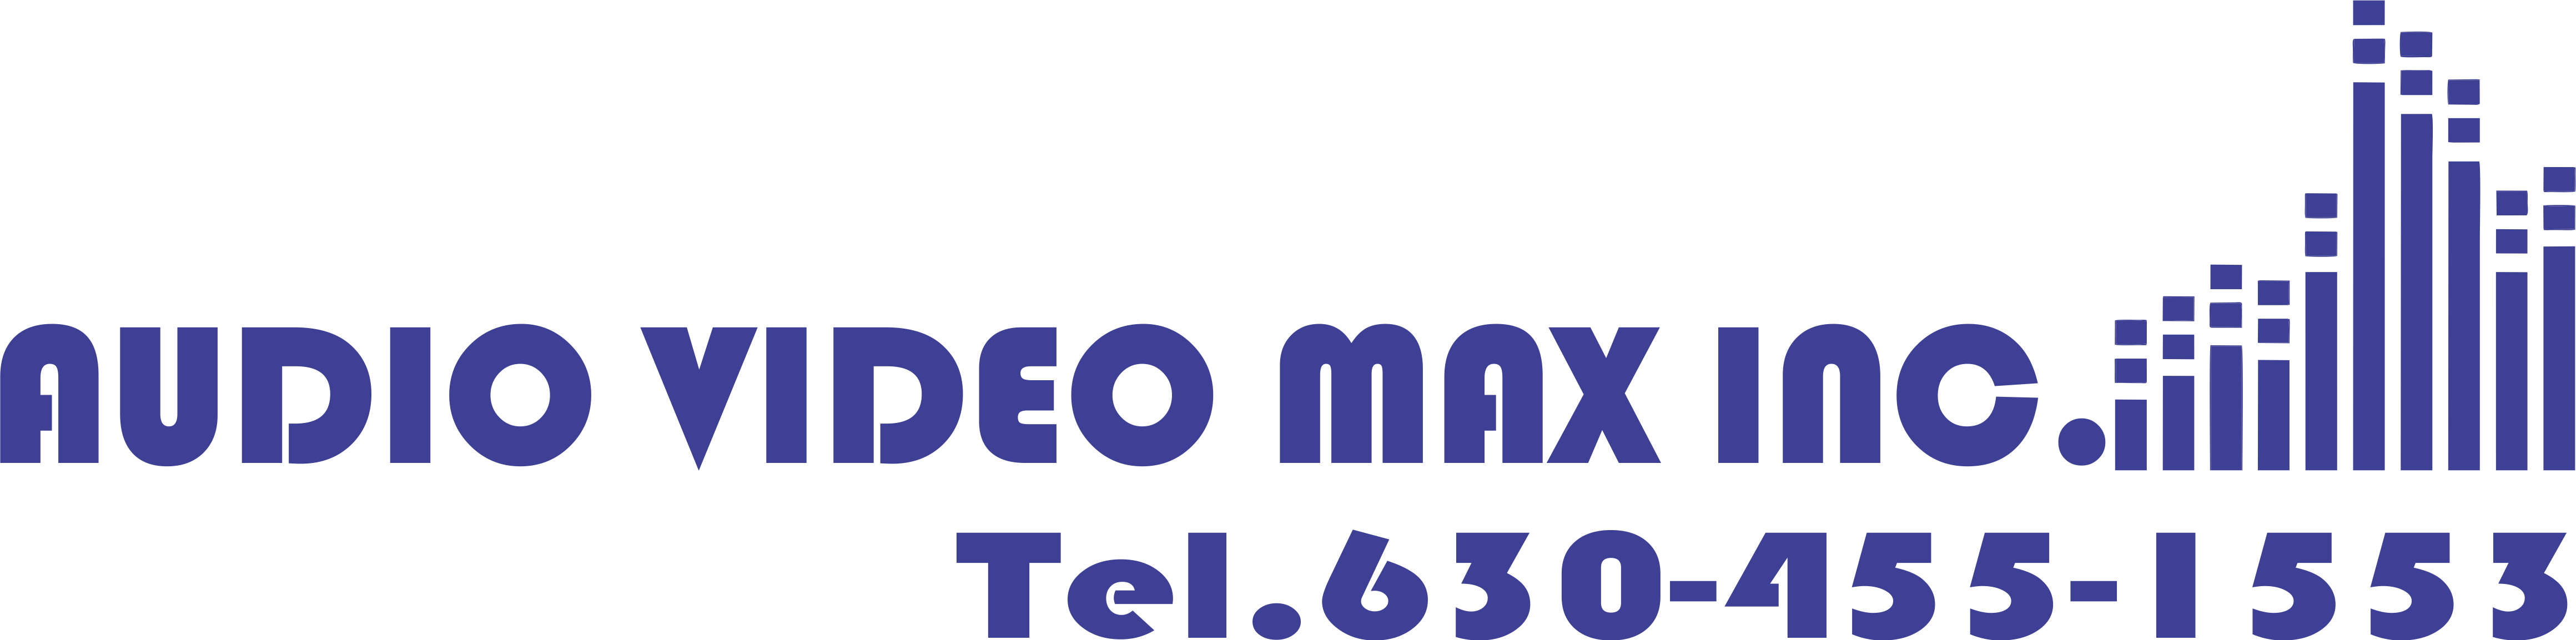 Audio Video Max Inc